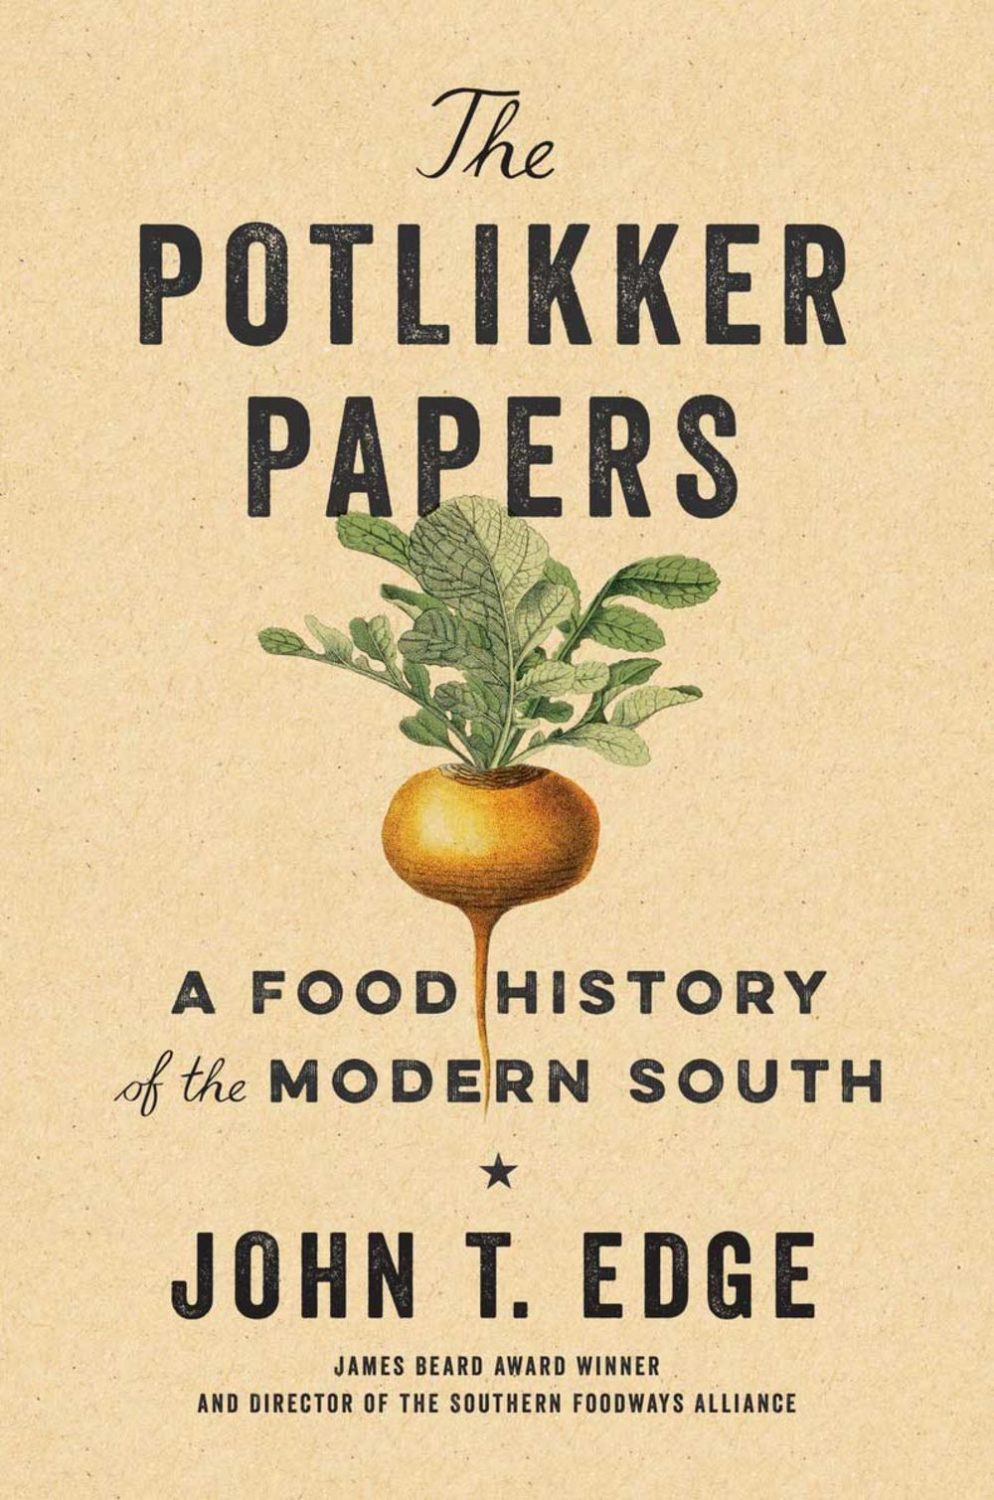 Download ebook The Potlikker Papers: A Food History of the Modern South